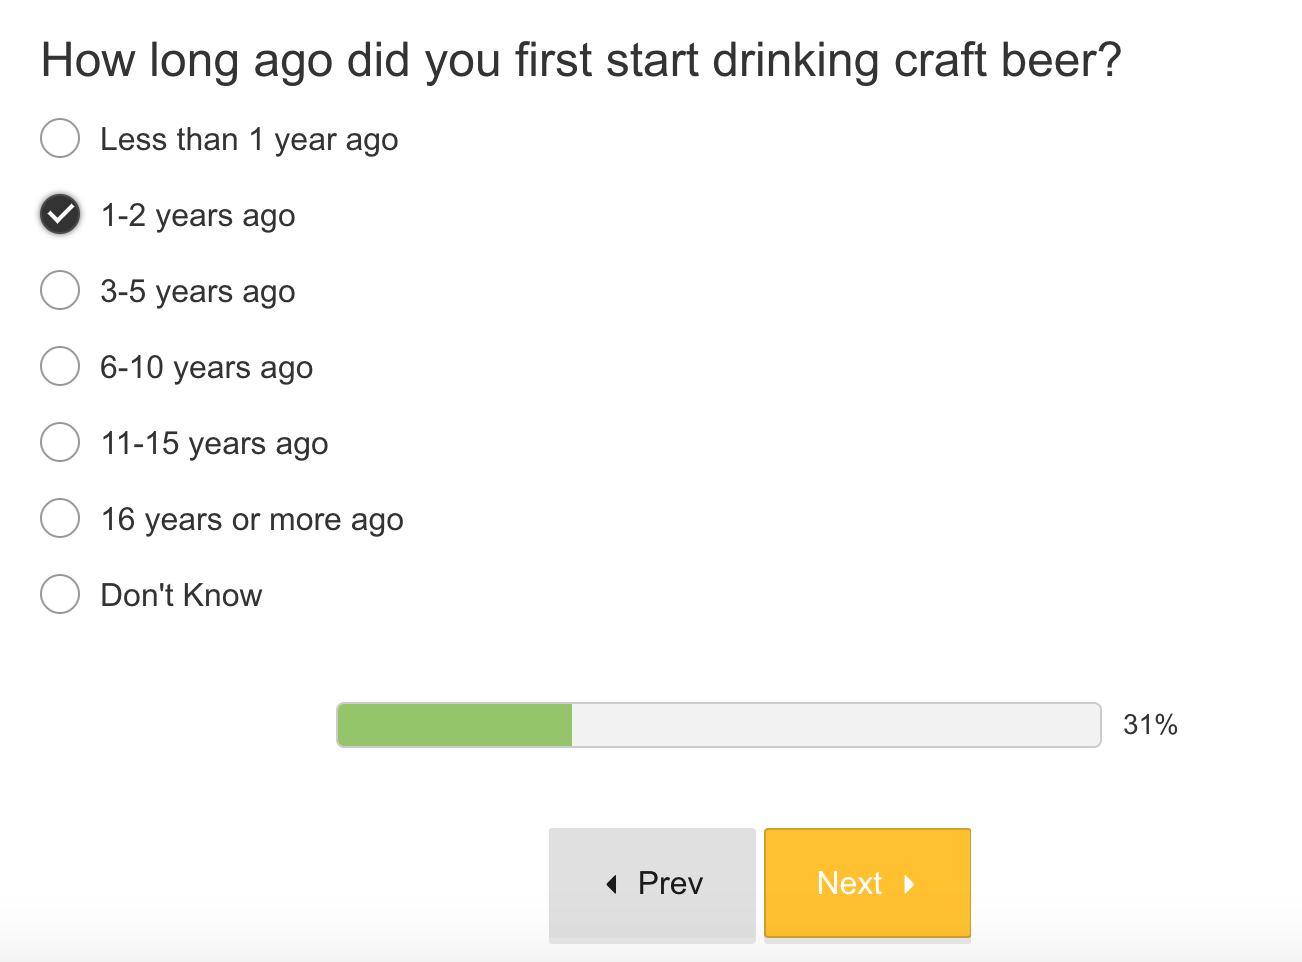 Screenshot showing a survey question